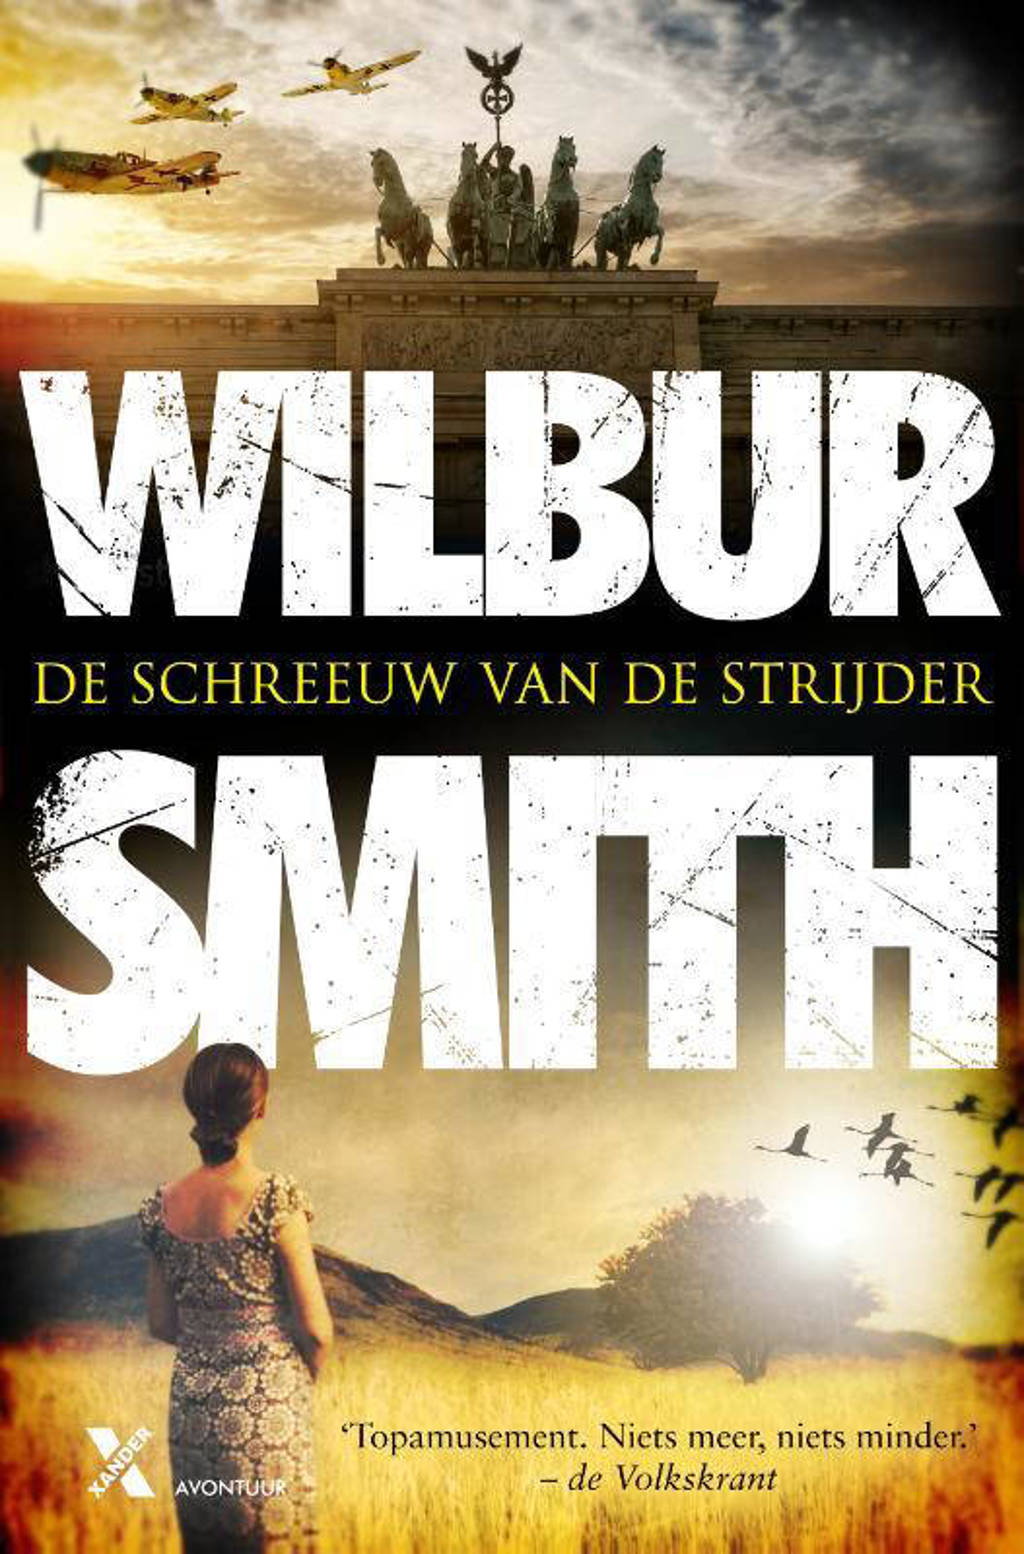 Courtney: De schreeuw van de strijder - Wilbur Smith en David Churchill